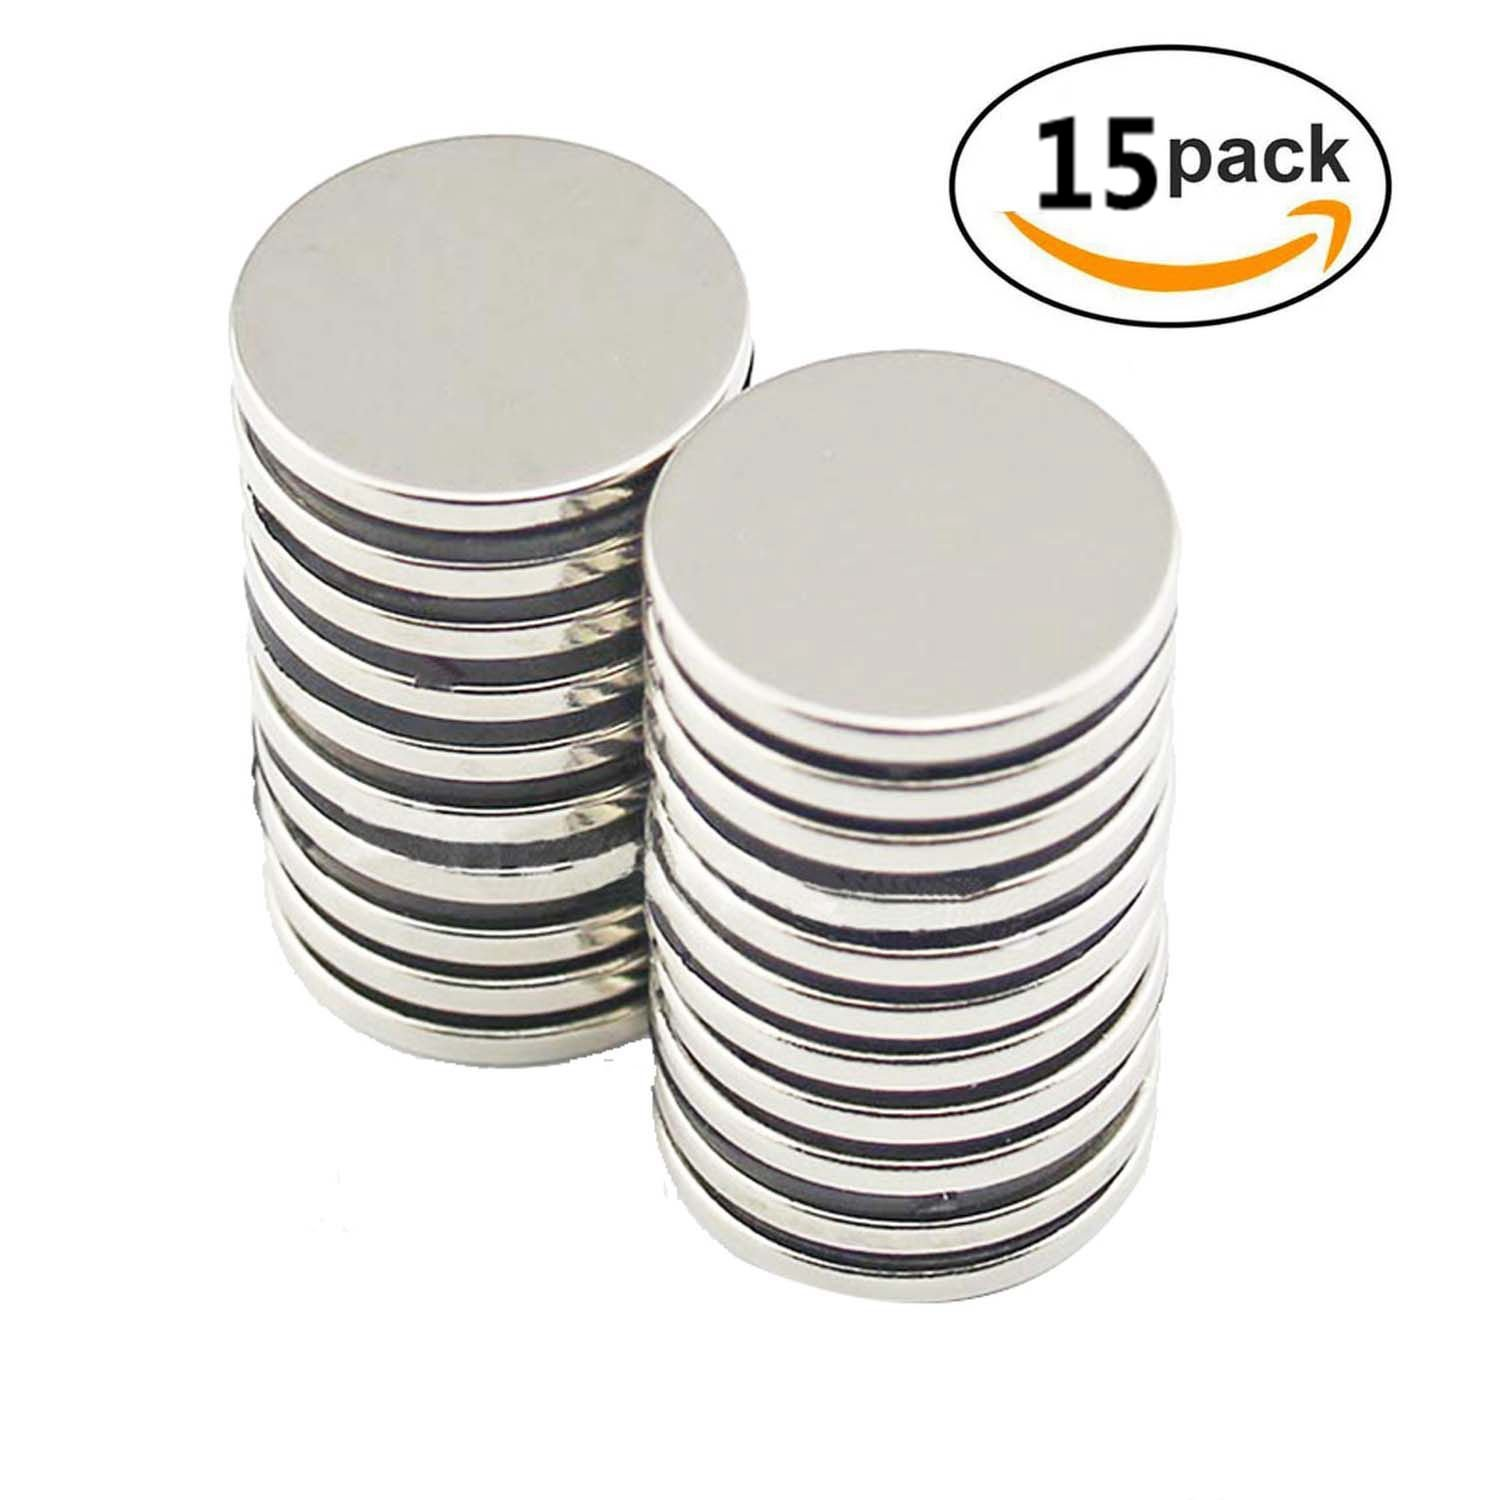 ZHW Neodymium Magnets N52-Rare Earth Magnets – Round 1'' D x 0.2'' Thin Magnetic Discs – Craft, Science Or DIY Magnets Pack of 15